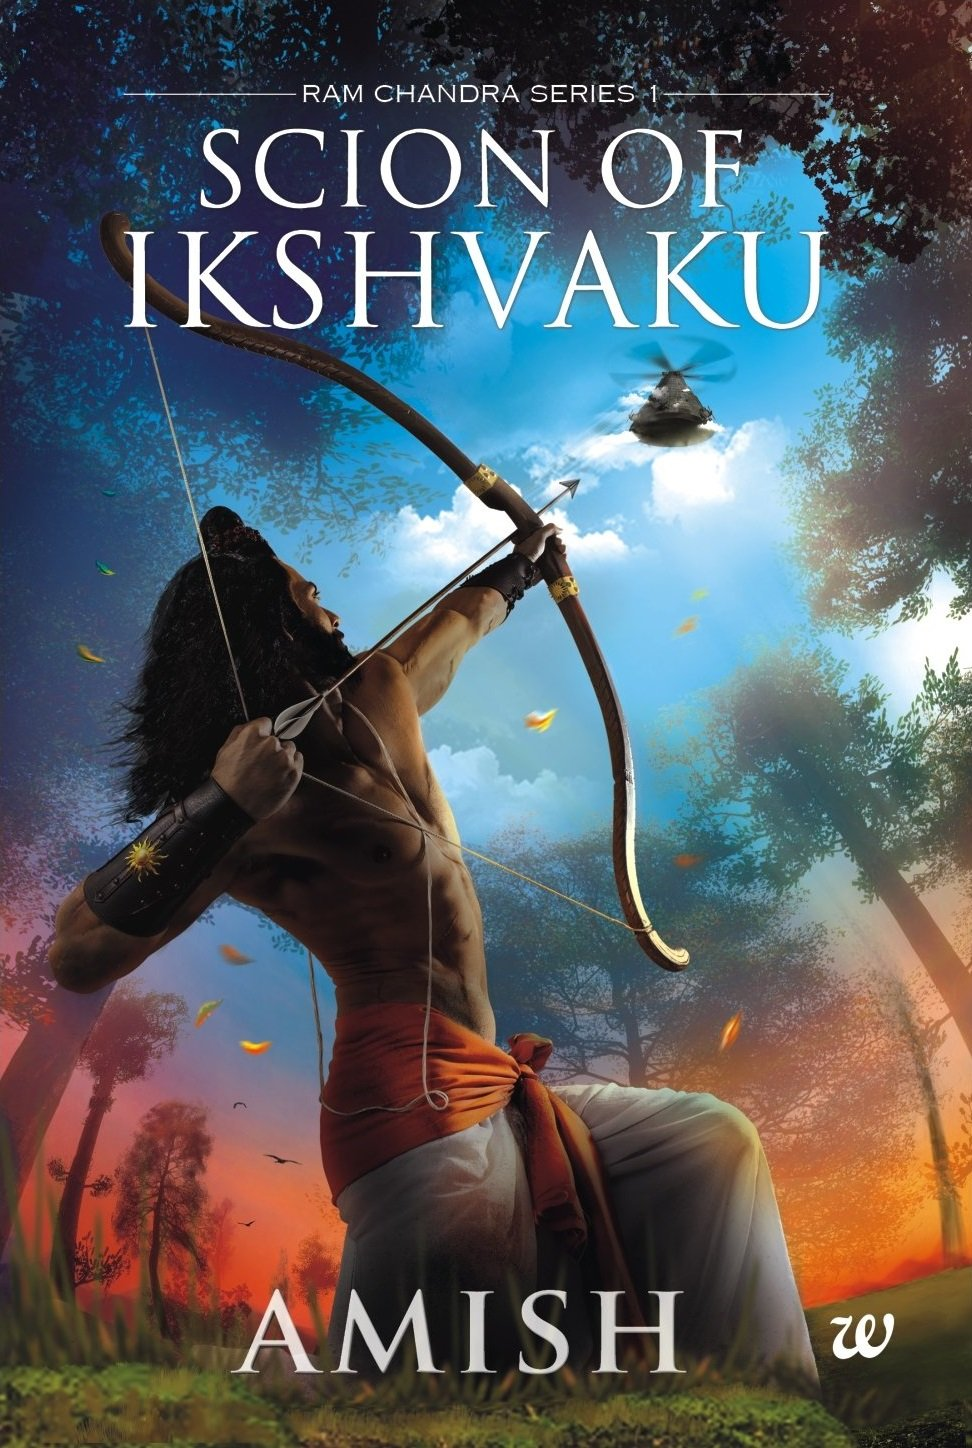 buy scion of ikshvaku collector s edition personally signed by buy scion of ikshvaku collector s edition personally signed by amish book online at low prices in scion of ikshvaku collector s edition